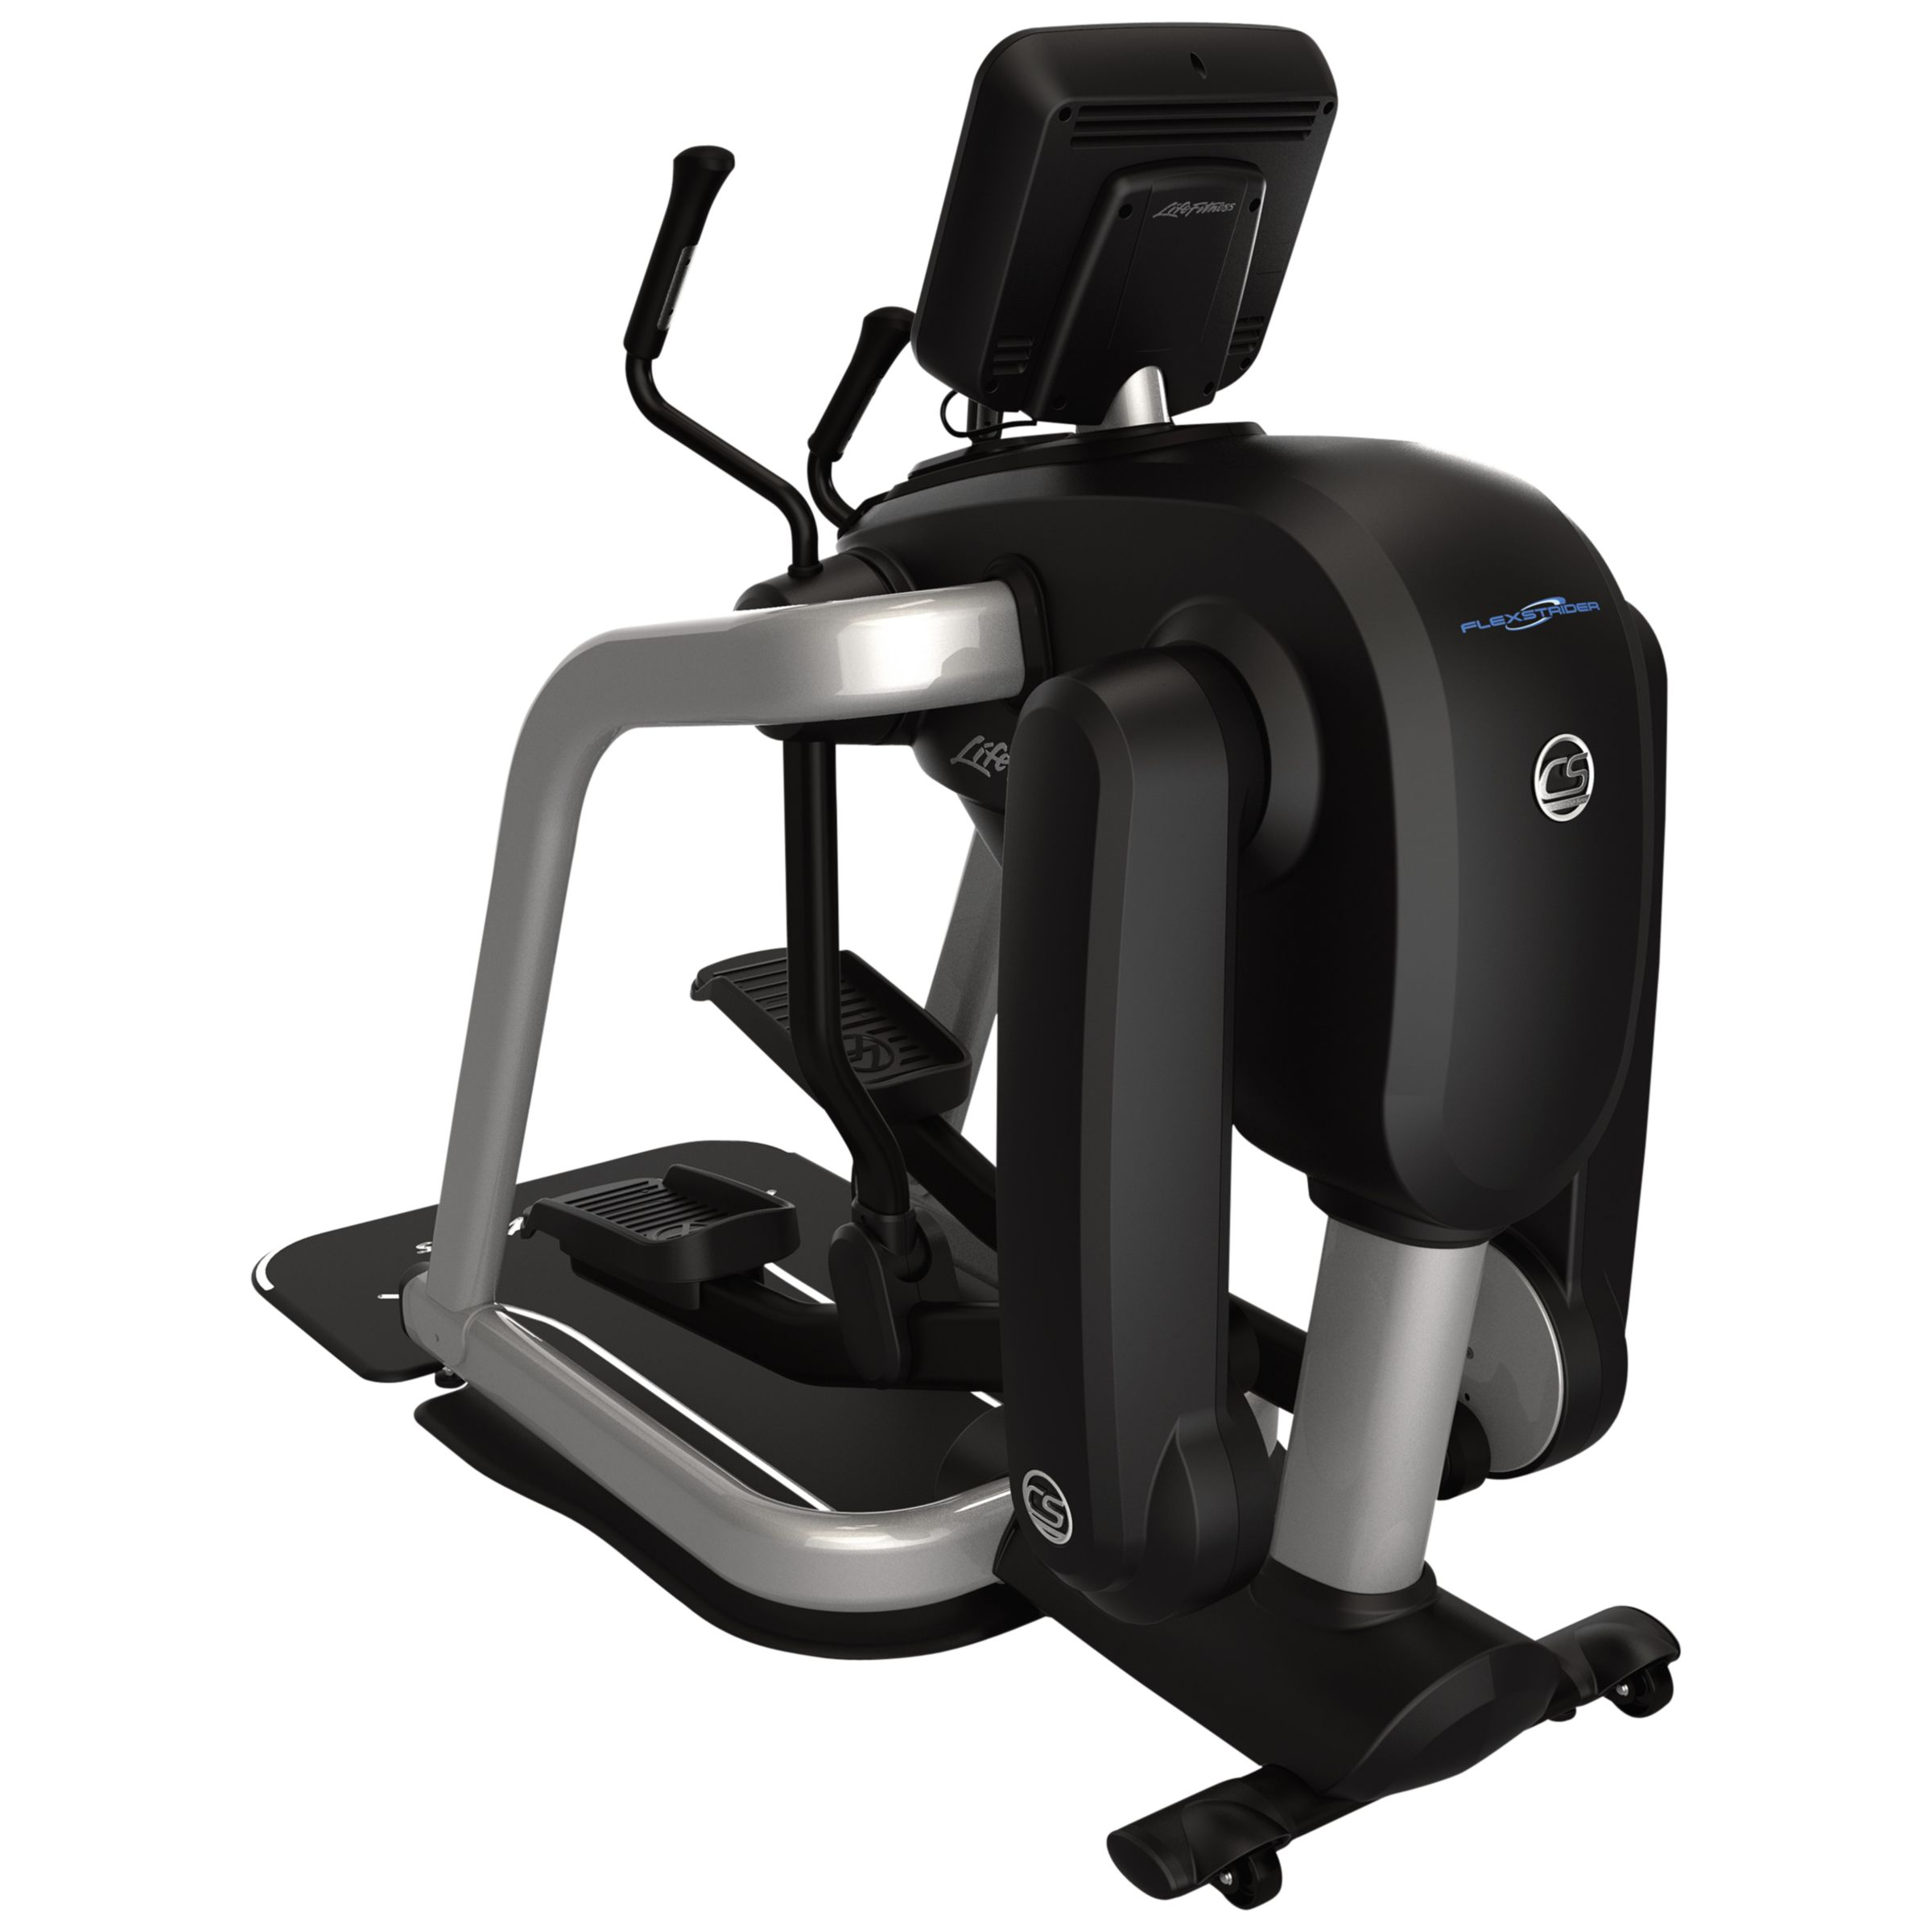 Life Fitness Life Fitness FlexStrider Cross Trainer With Discover SI, Black